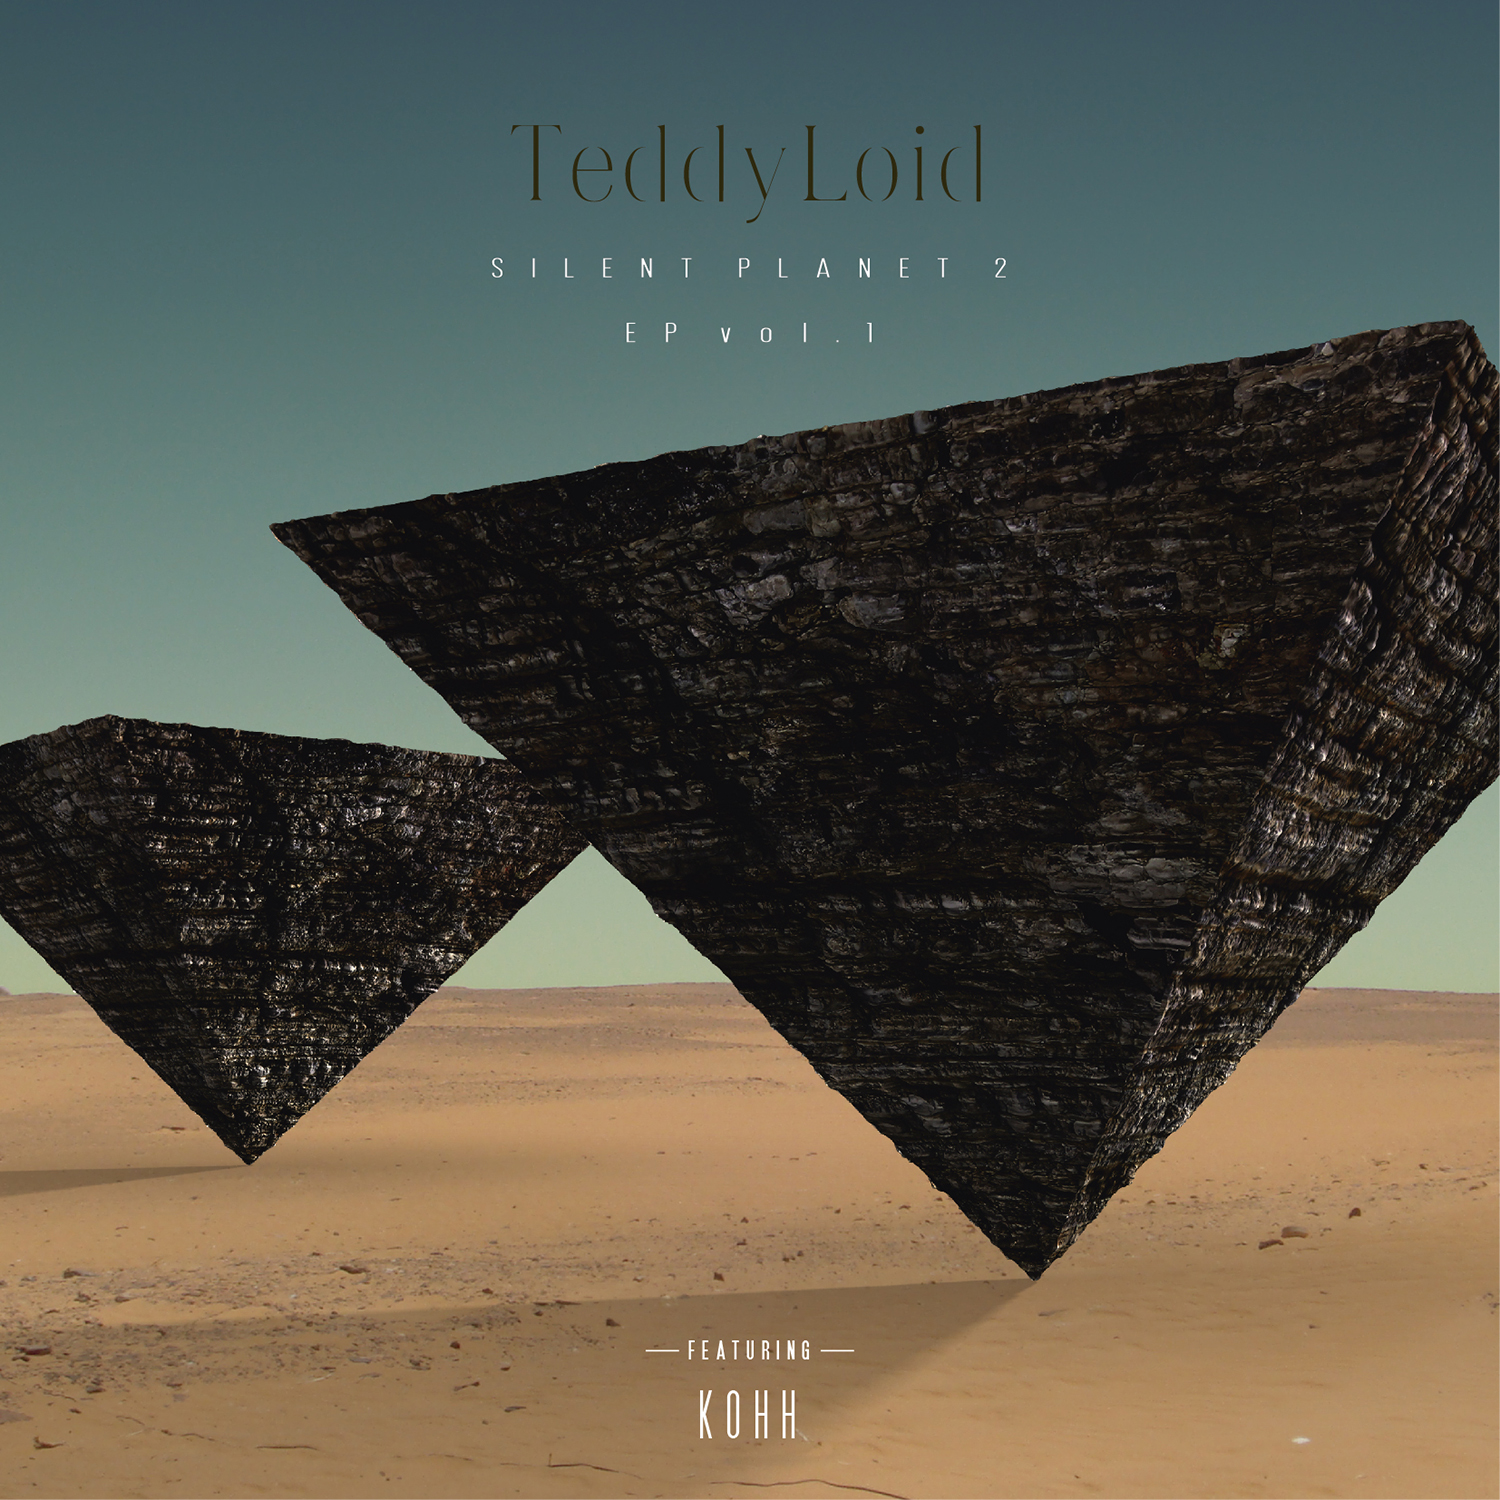 TEDDYLOID – SILENT PLANET 2 EP vol.1